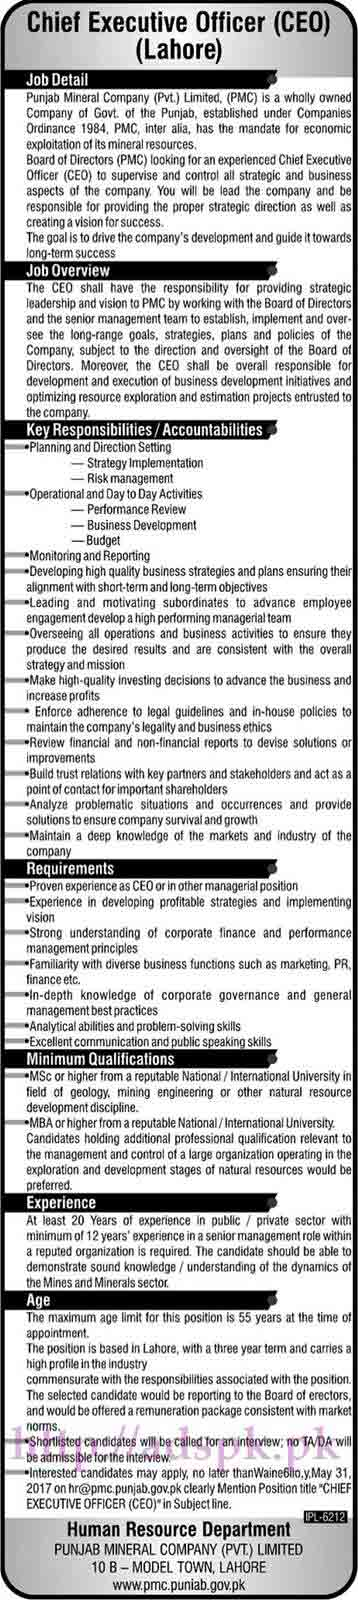 Punjab Mineral Company Pvt. Limited Lahore Jobs 2017 for Chief Executive Officer (CEO) Jobs Application Deadline 31-05-2017 Apply Now